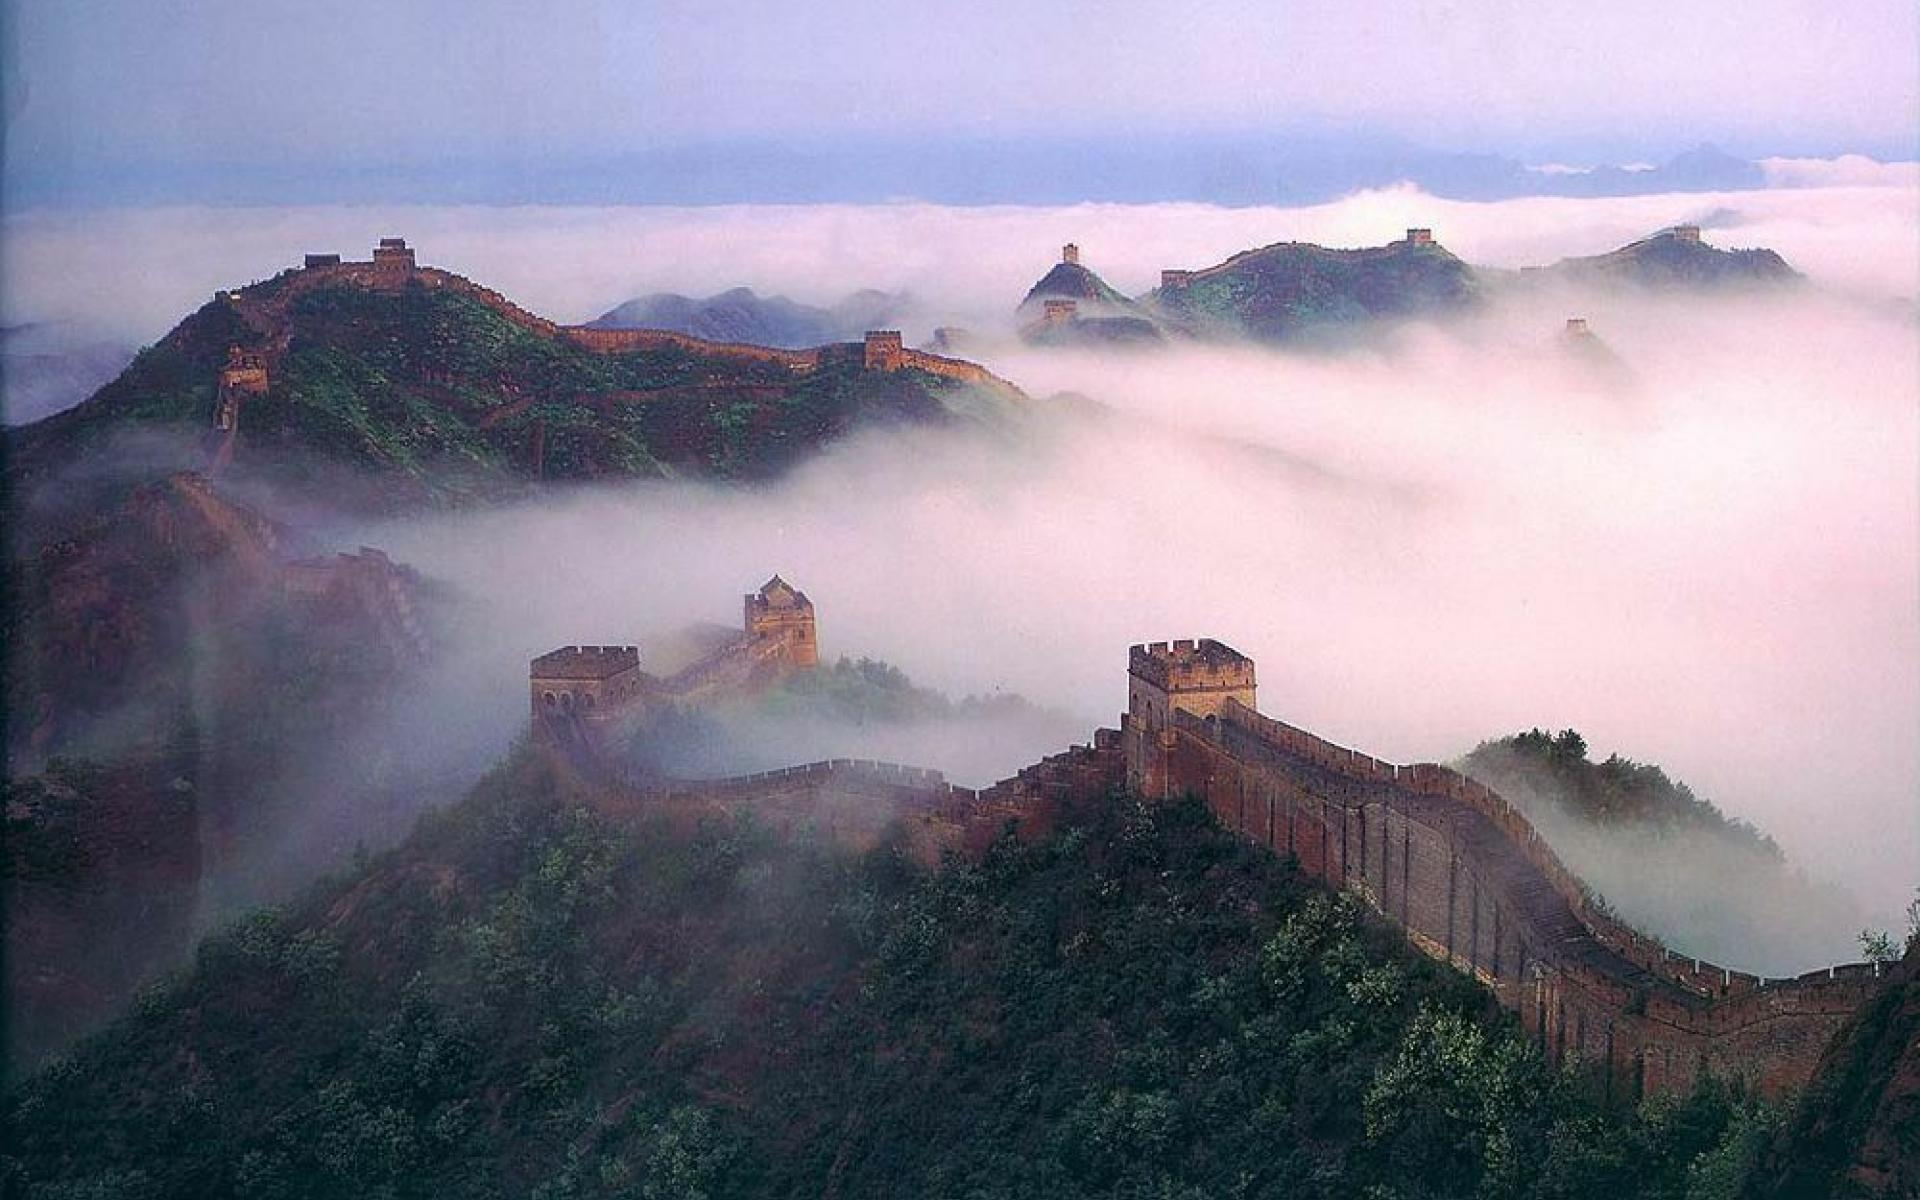 photos of the great wall of china